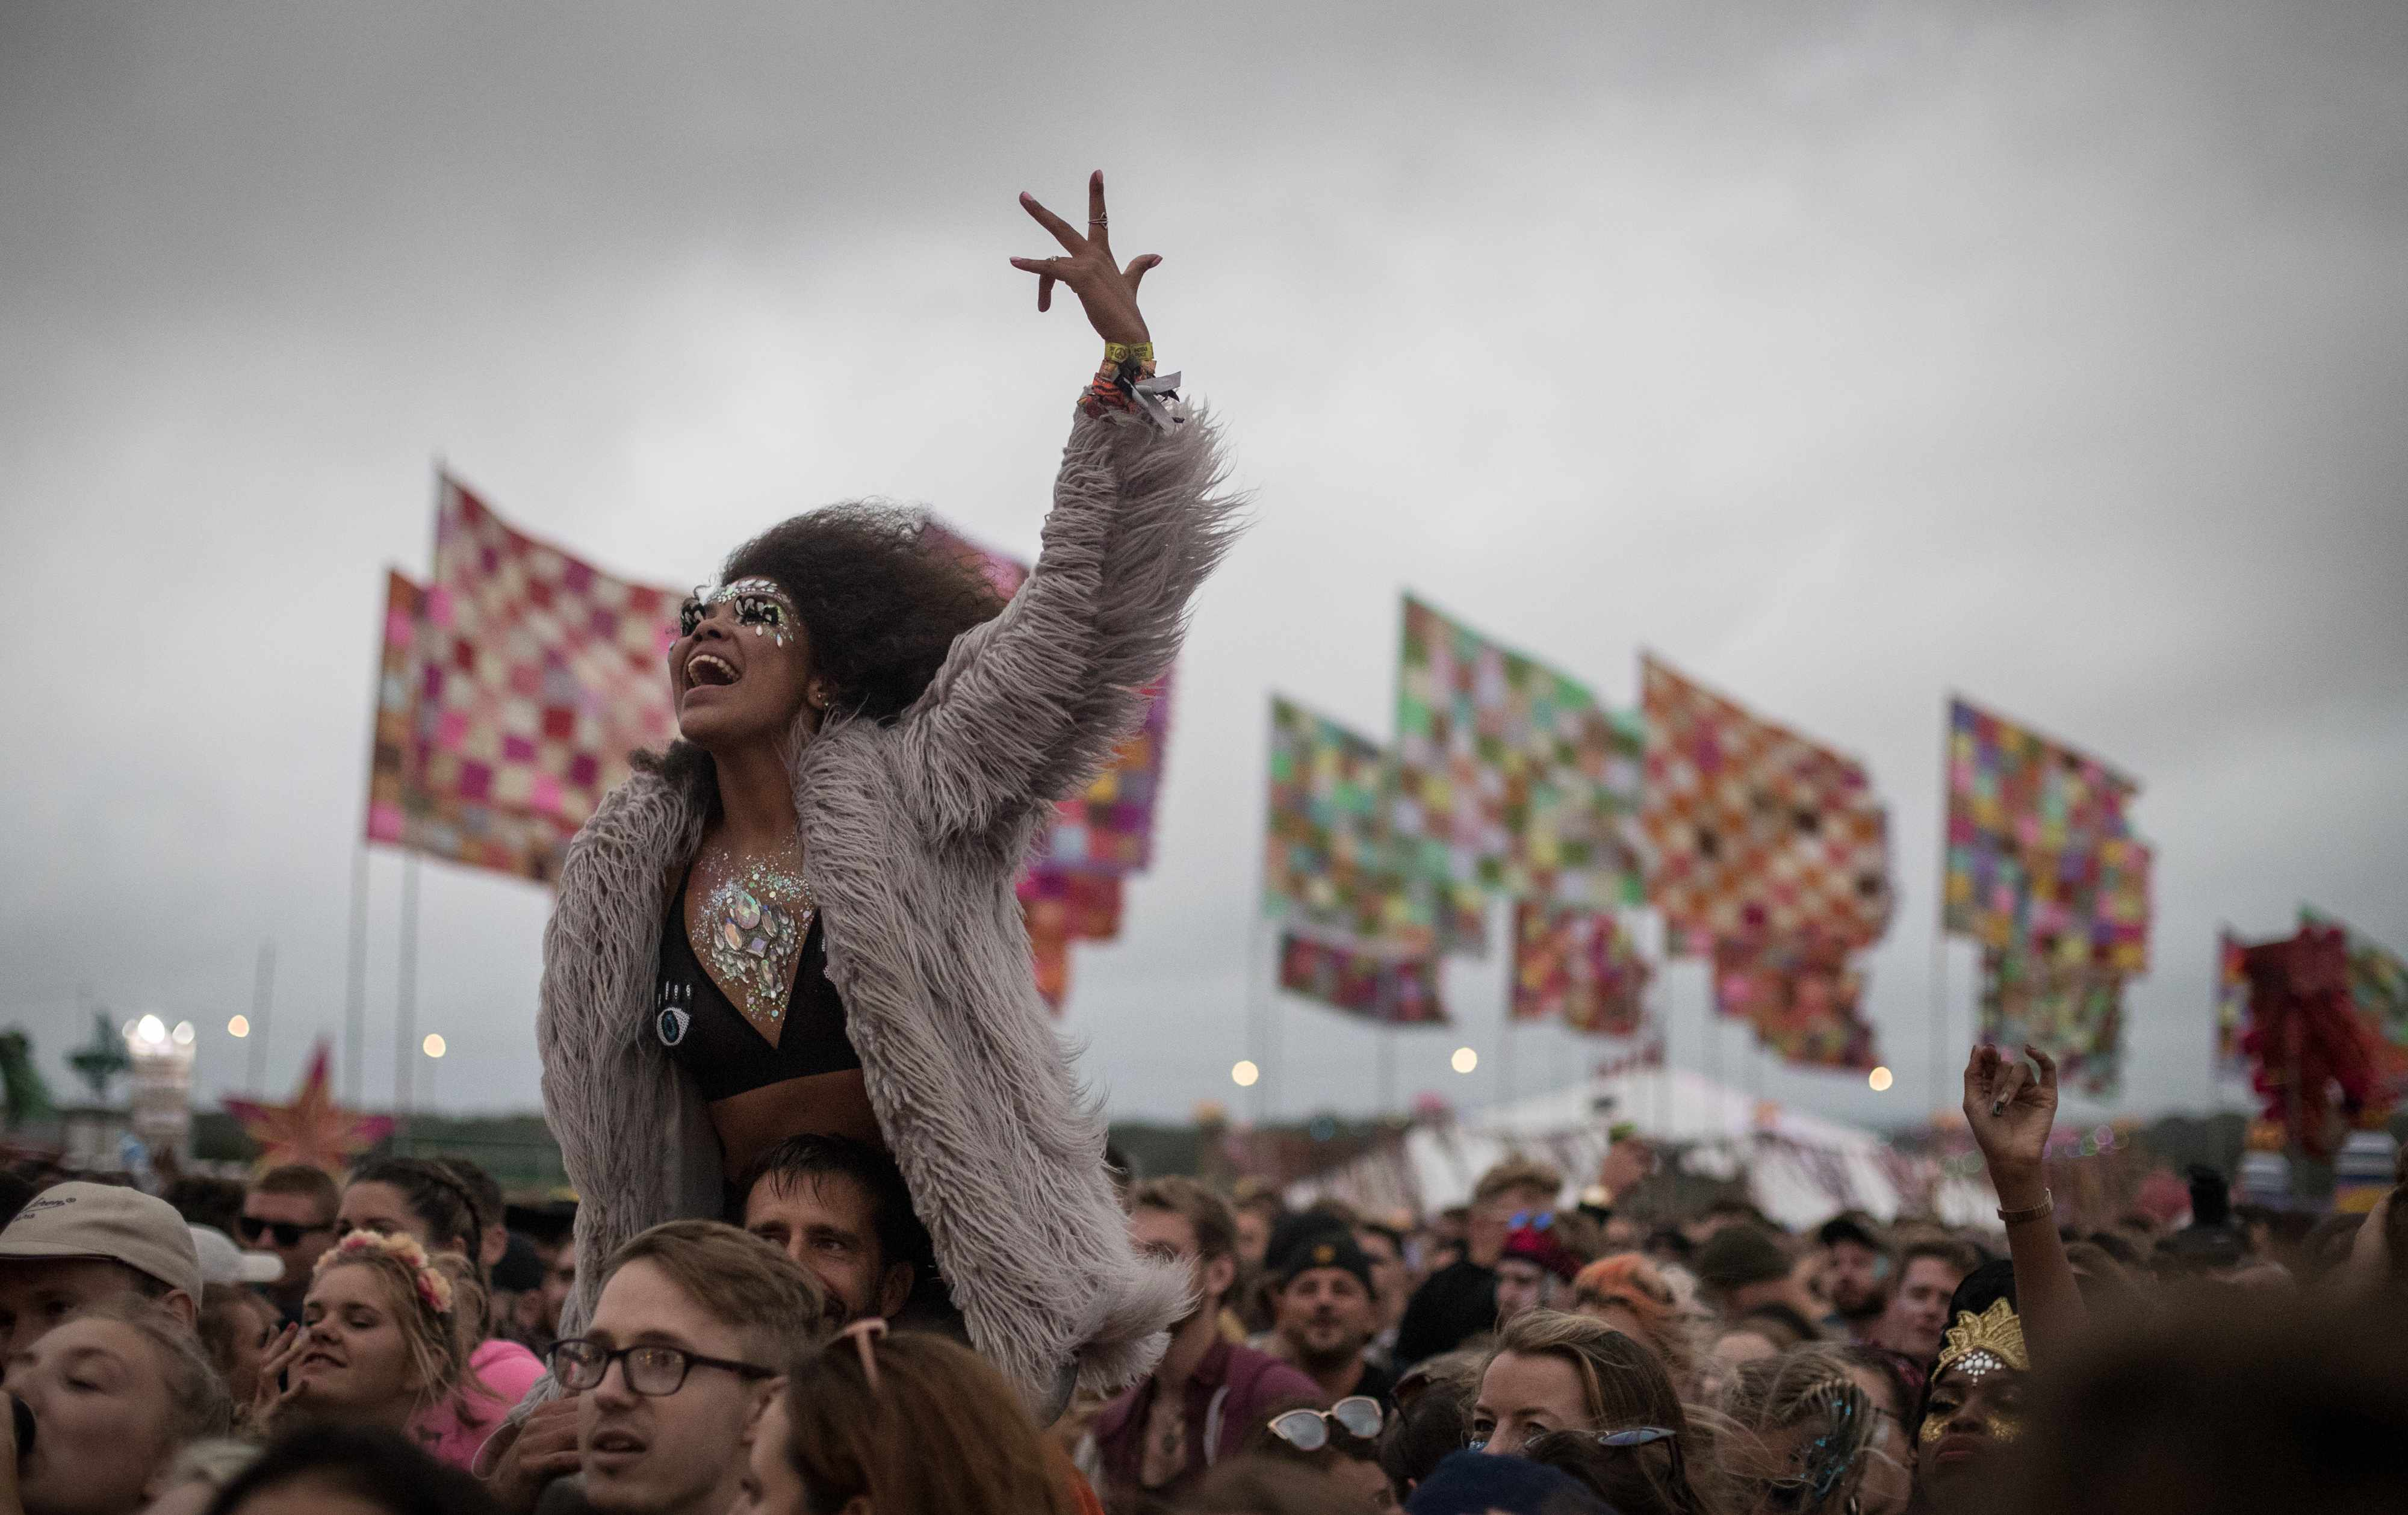 Isle of Wight Festival (Getty, MH)